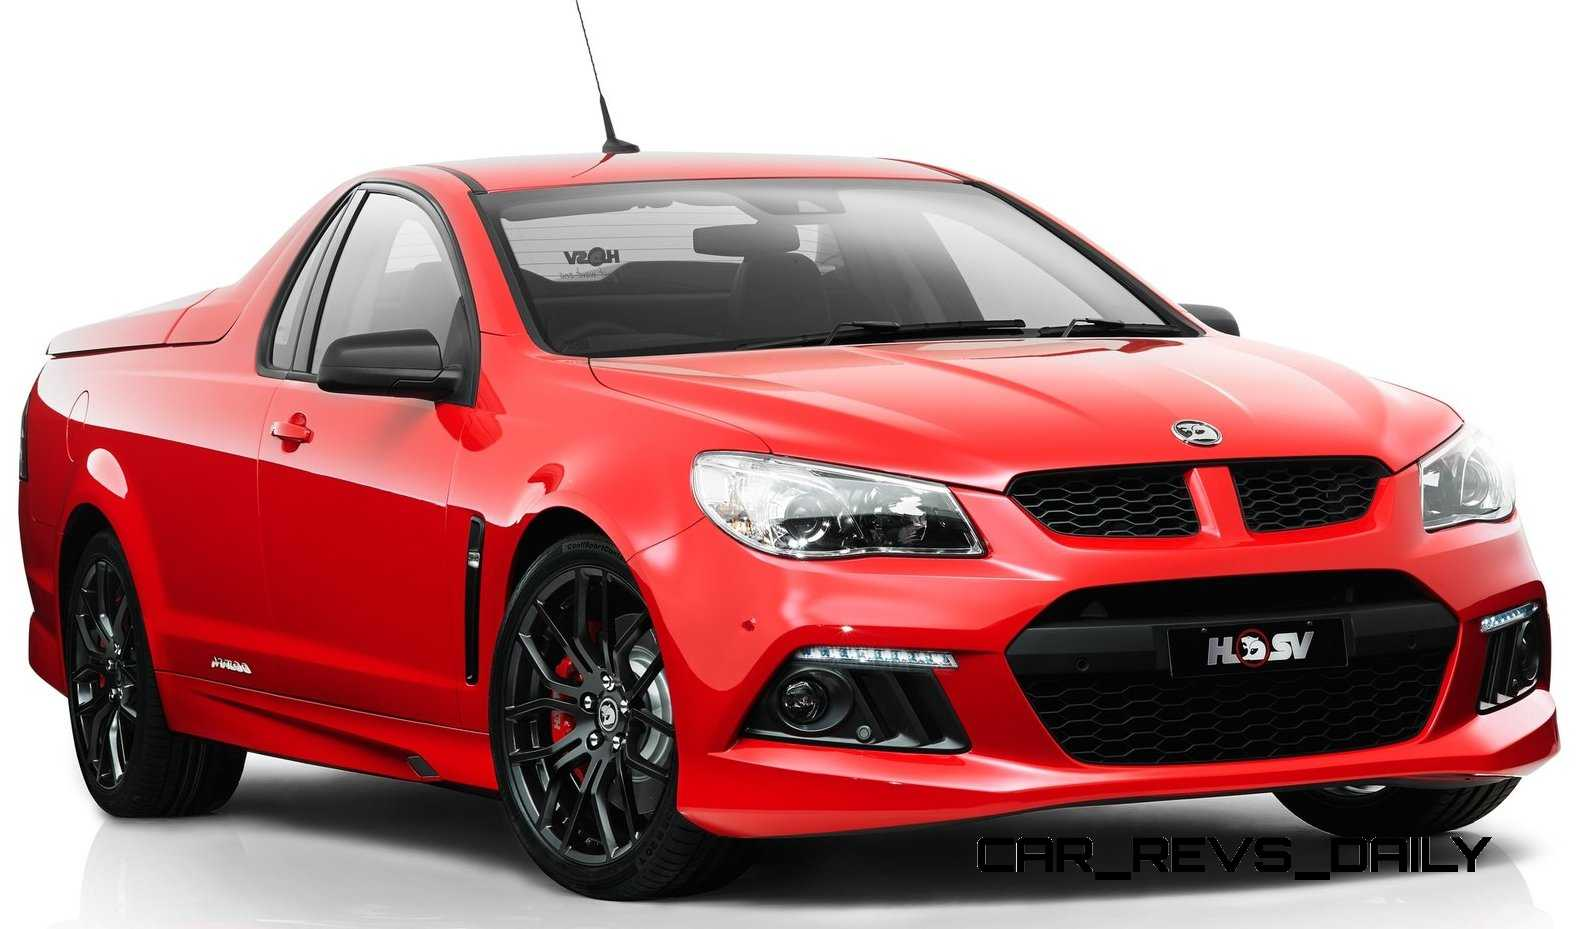 HSV-Gen-F_Maloo_R8_SV_2014_1600x1200_wallpaper_0111